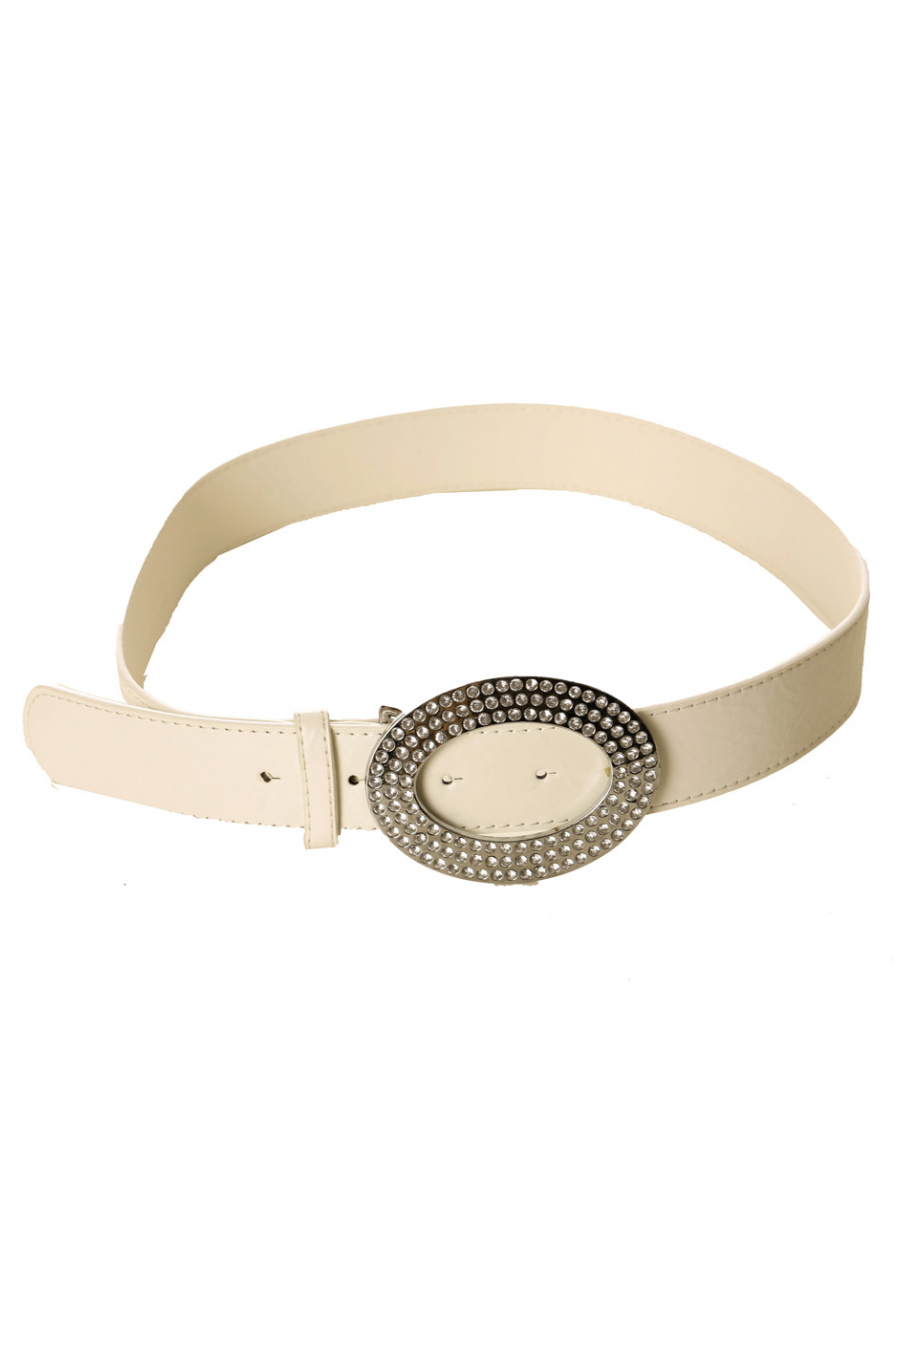 White leather-effect belt with oval buckle and rhinestones CE 724